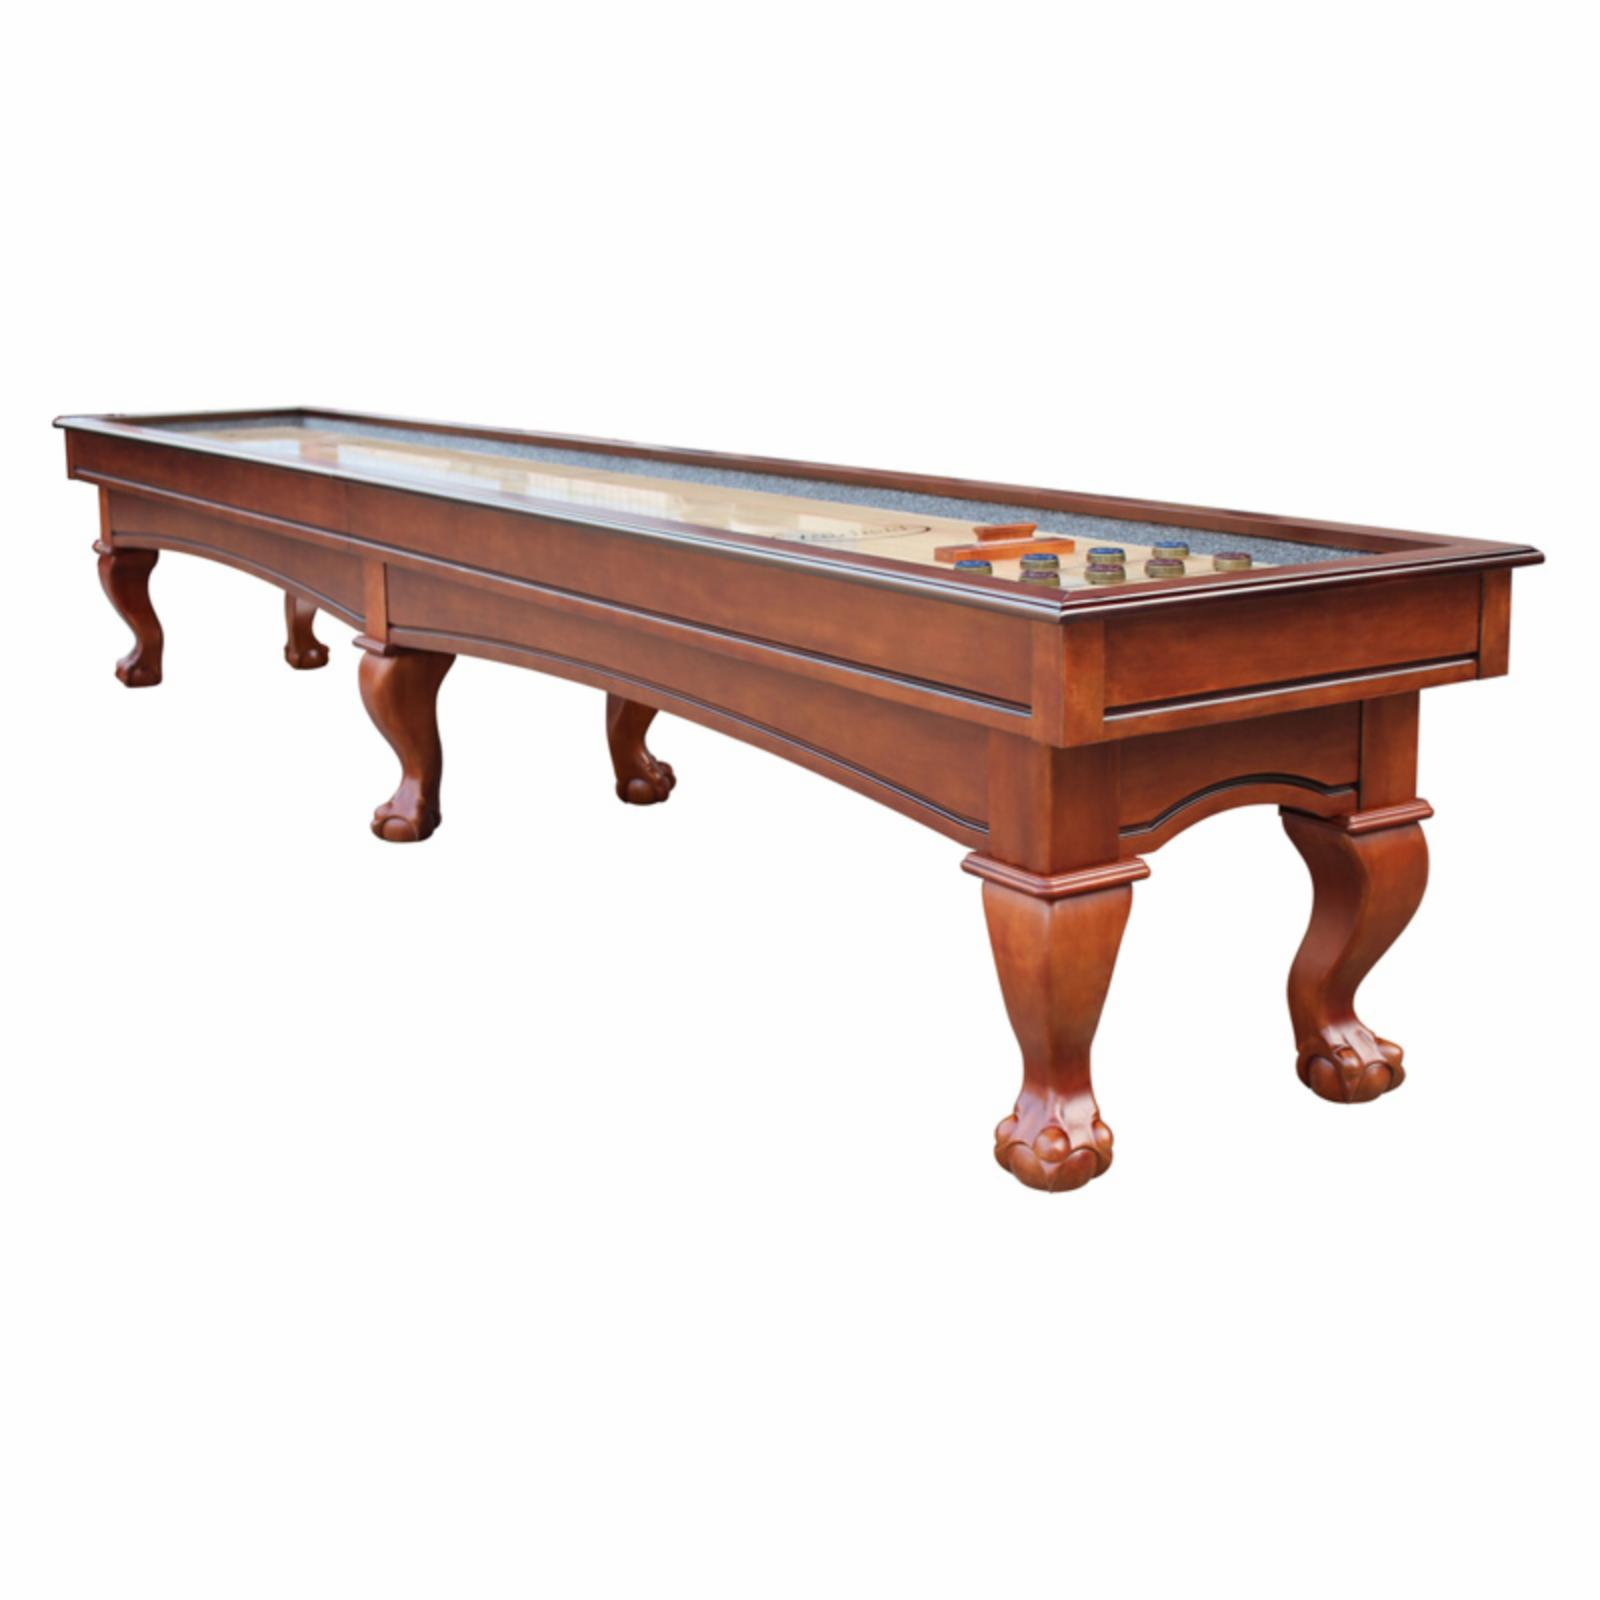 Playcraft Charles River Pro-Style Shuffleboard Table - SHCHRESP14